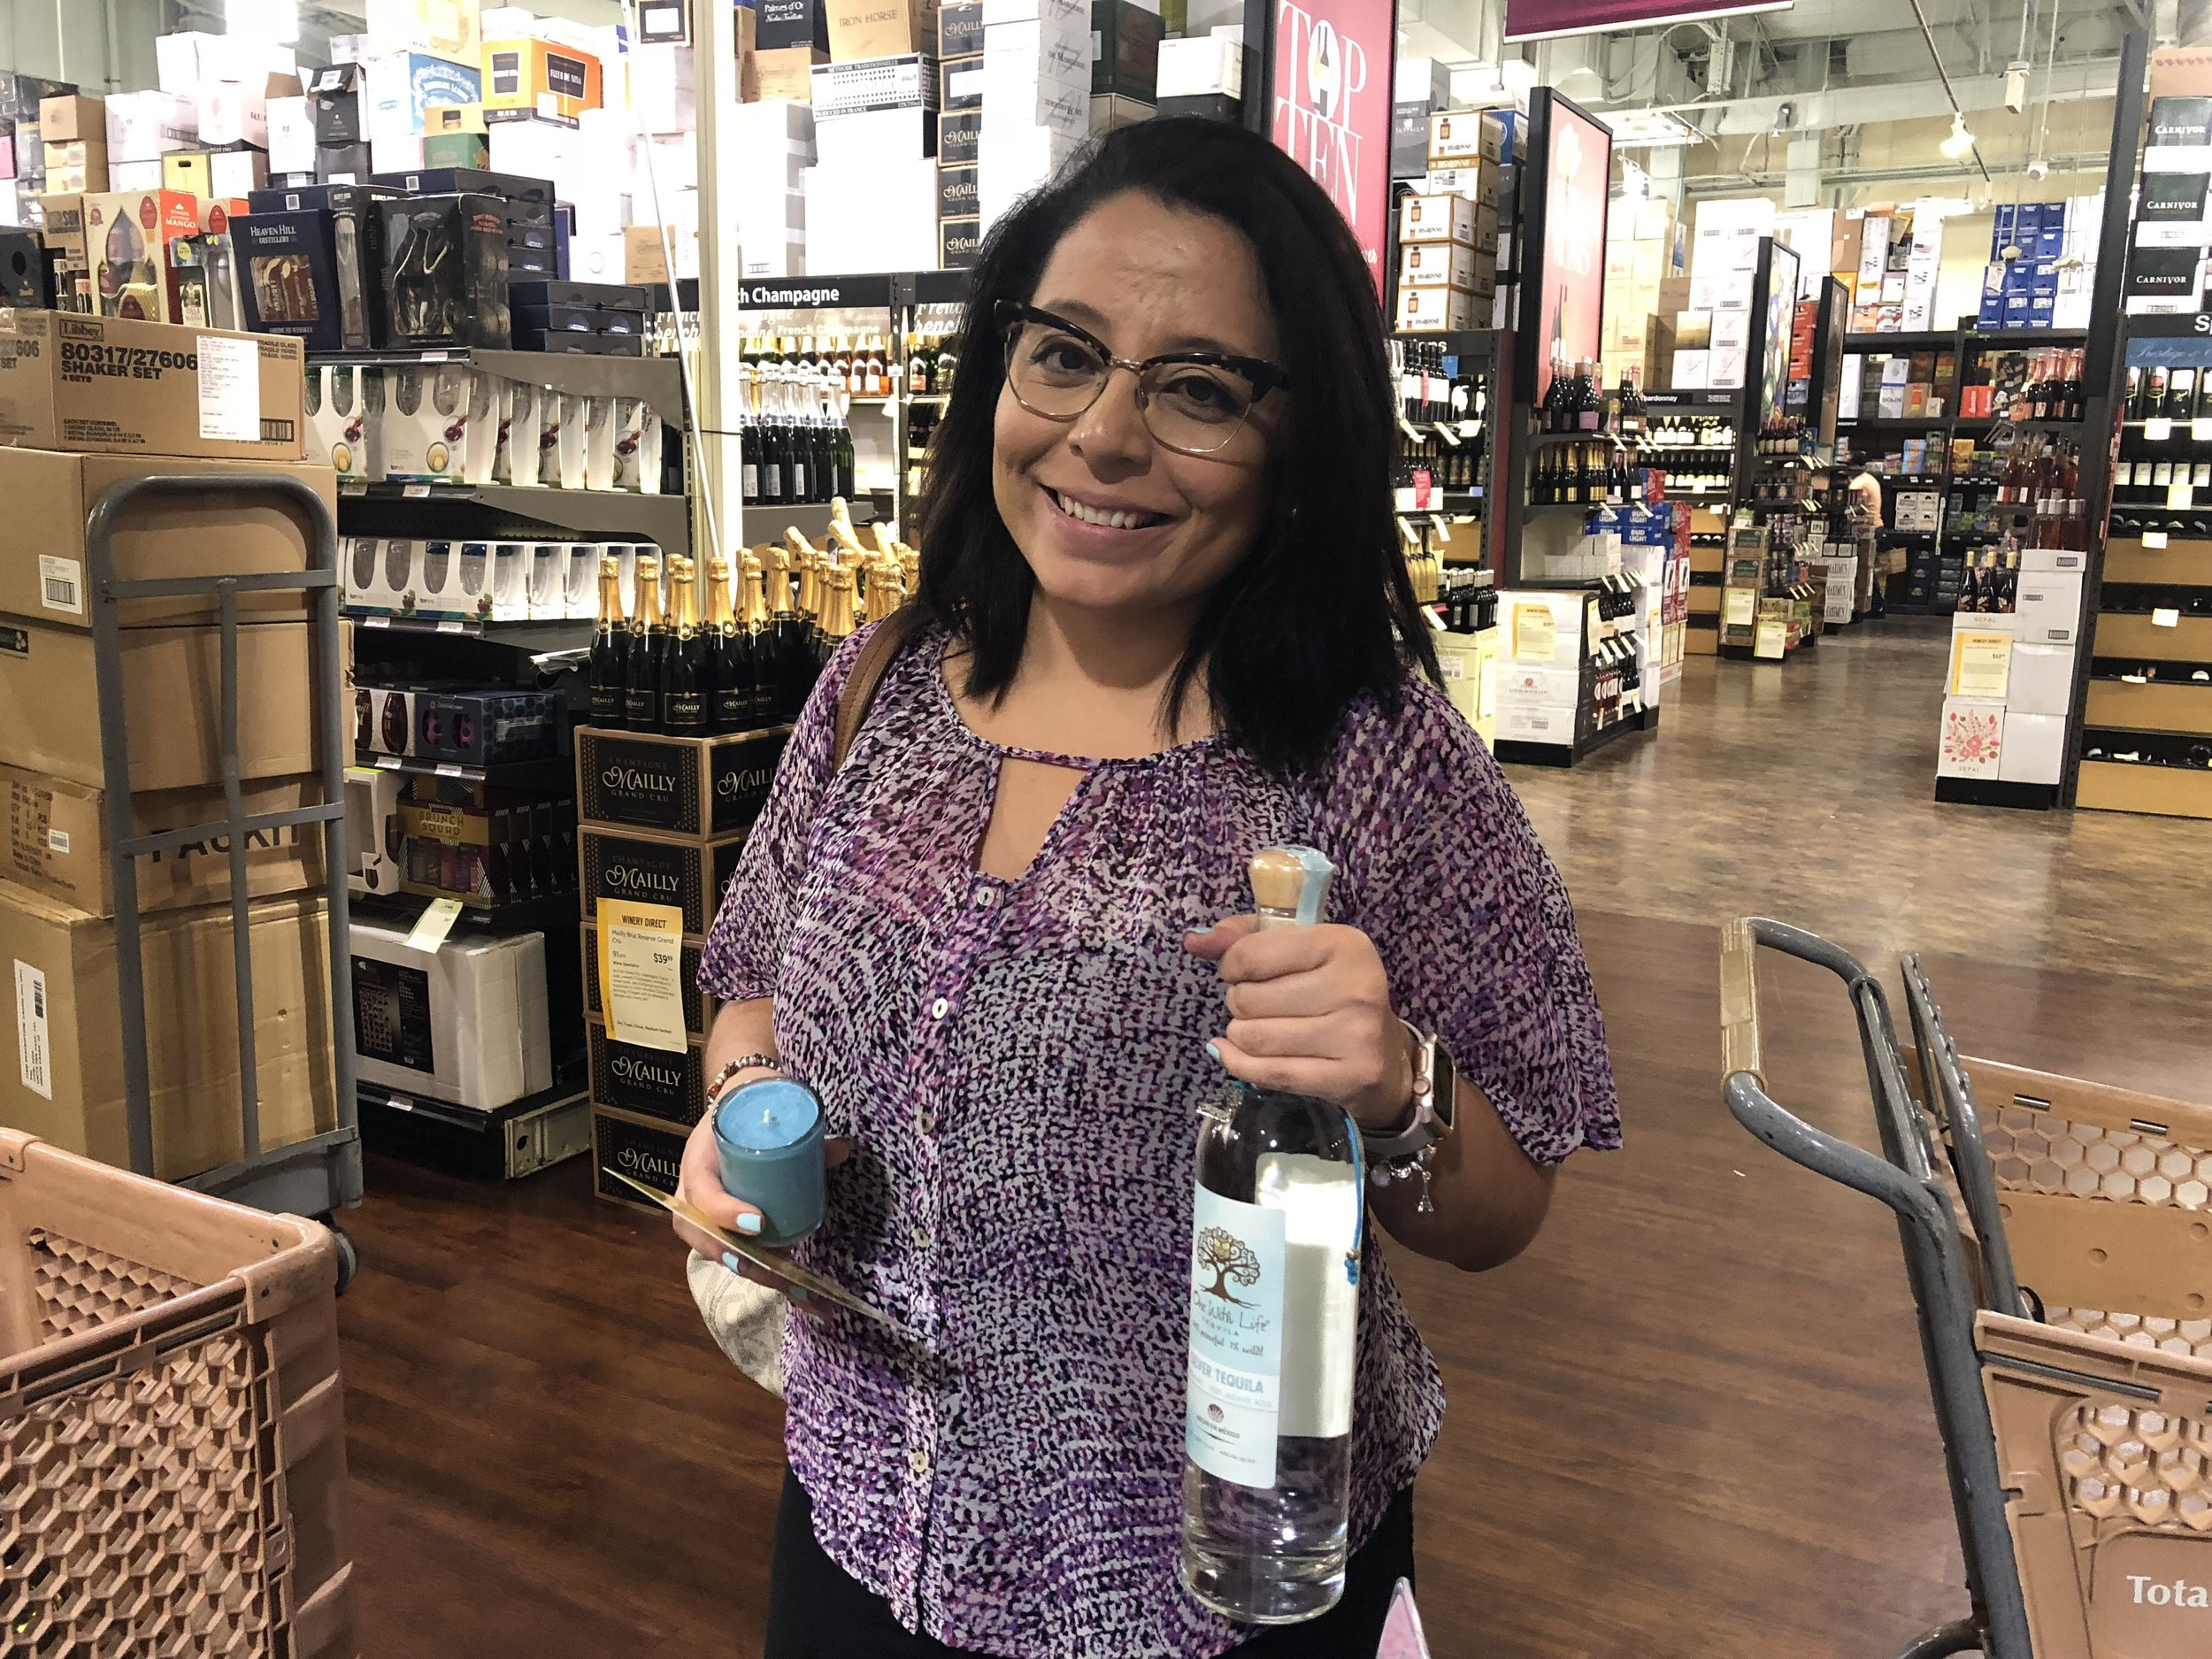 Total Wine - North Miami Beach